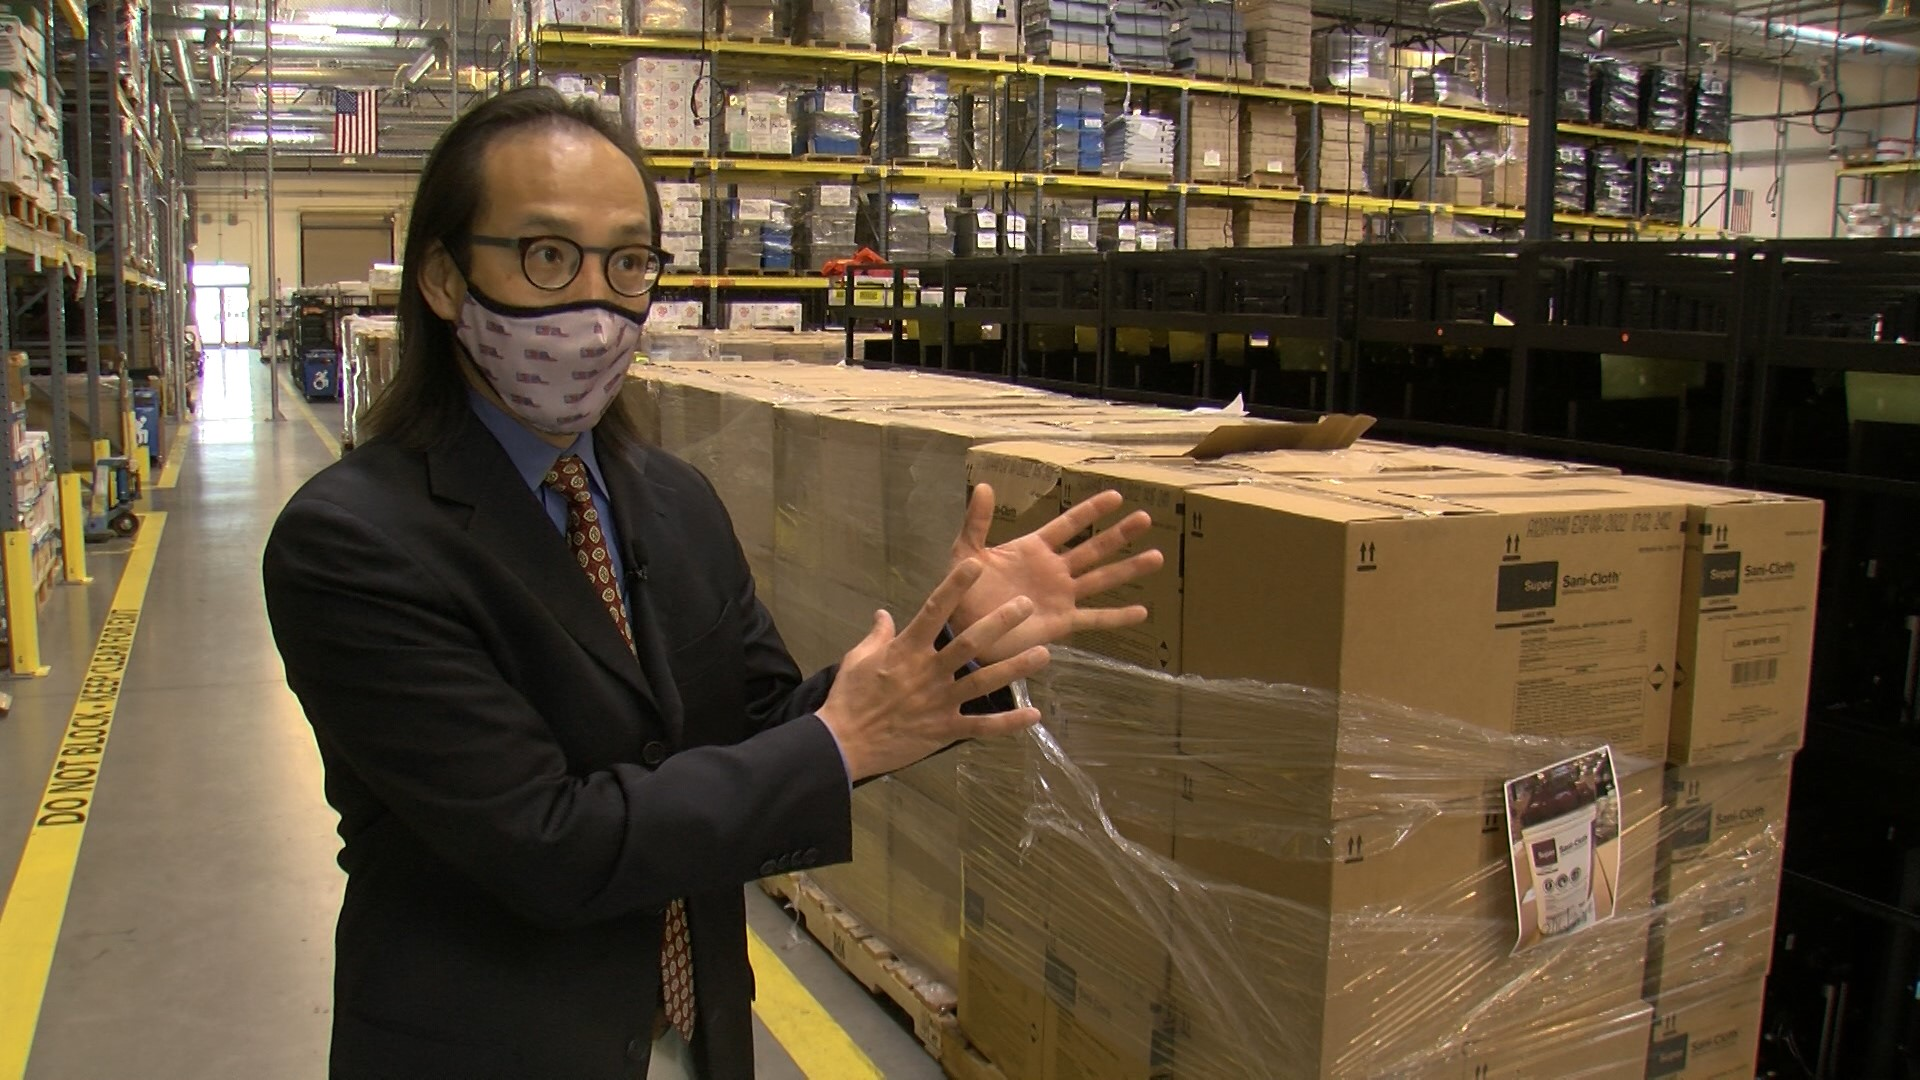 Caption: San Diego County Registrar of Voters Michael Vu stands in a warehouse filled with supplies for the 2020 election., Credit: Mike Damron / KPBS